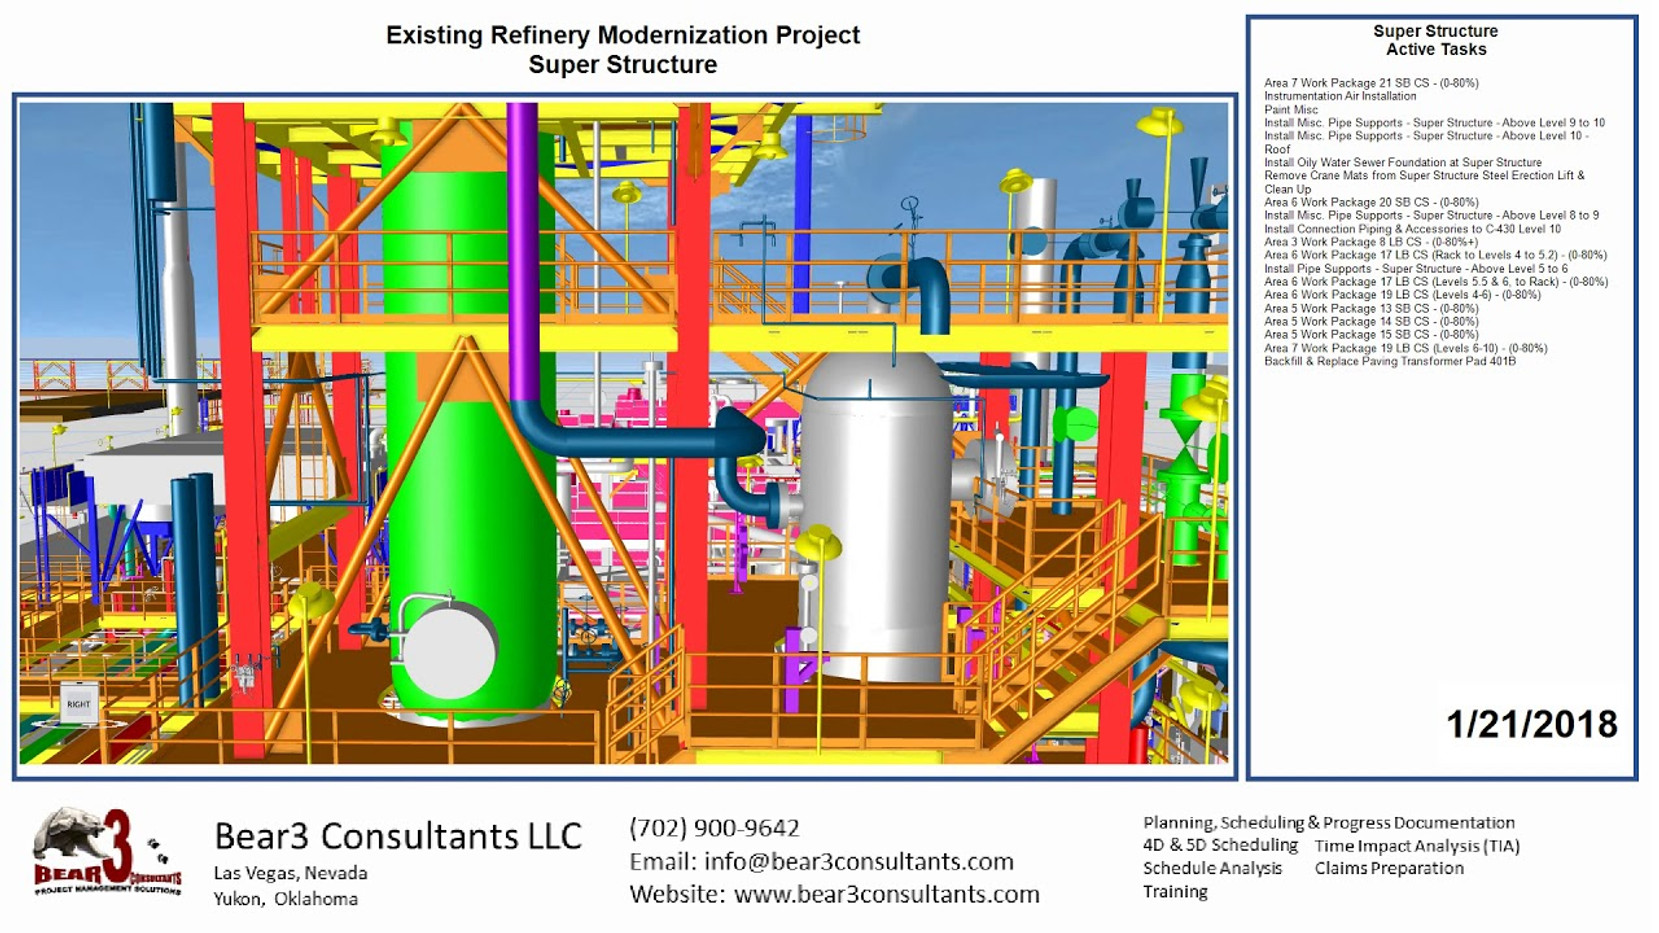 Existing Refinery Super Structure